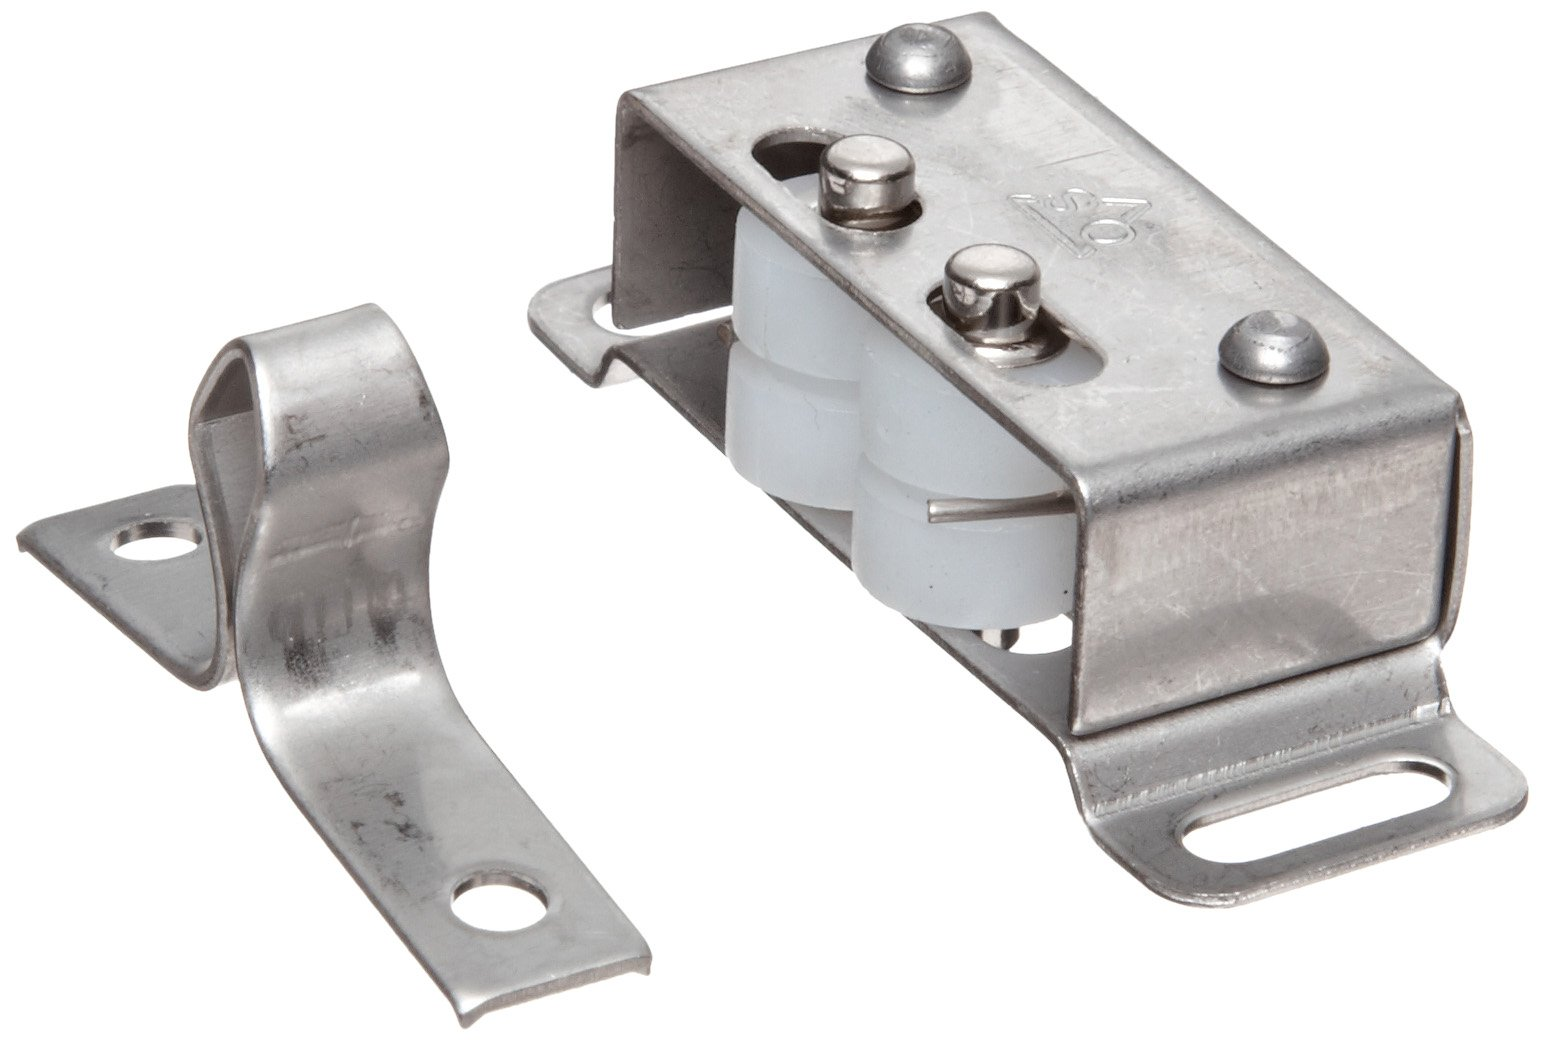 Stainless Steel 304 Surface Mount Roller Catch, 6lbs Pull Power, 1-27/32'' Length, 1-19/64'' Width, 37/64'' Height (Pack of 2)